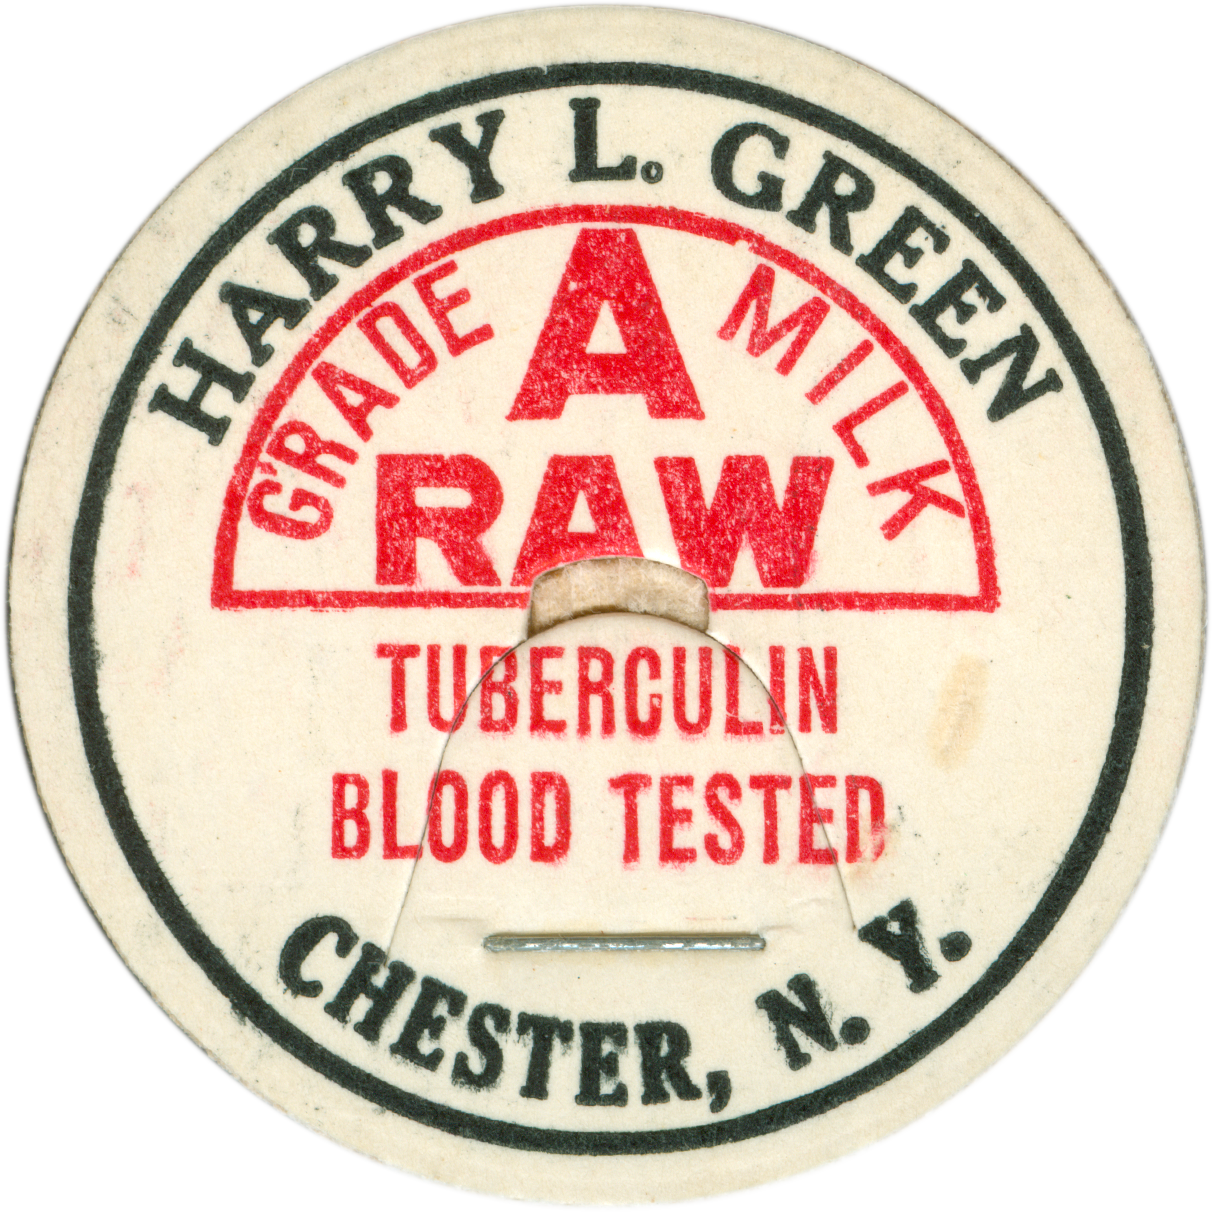 VernacularCircles__0001s_0040_Harry-L.-Green---Grade-A-Raw-Milk---Tuberculin-Blood-Tested.png